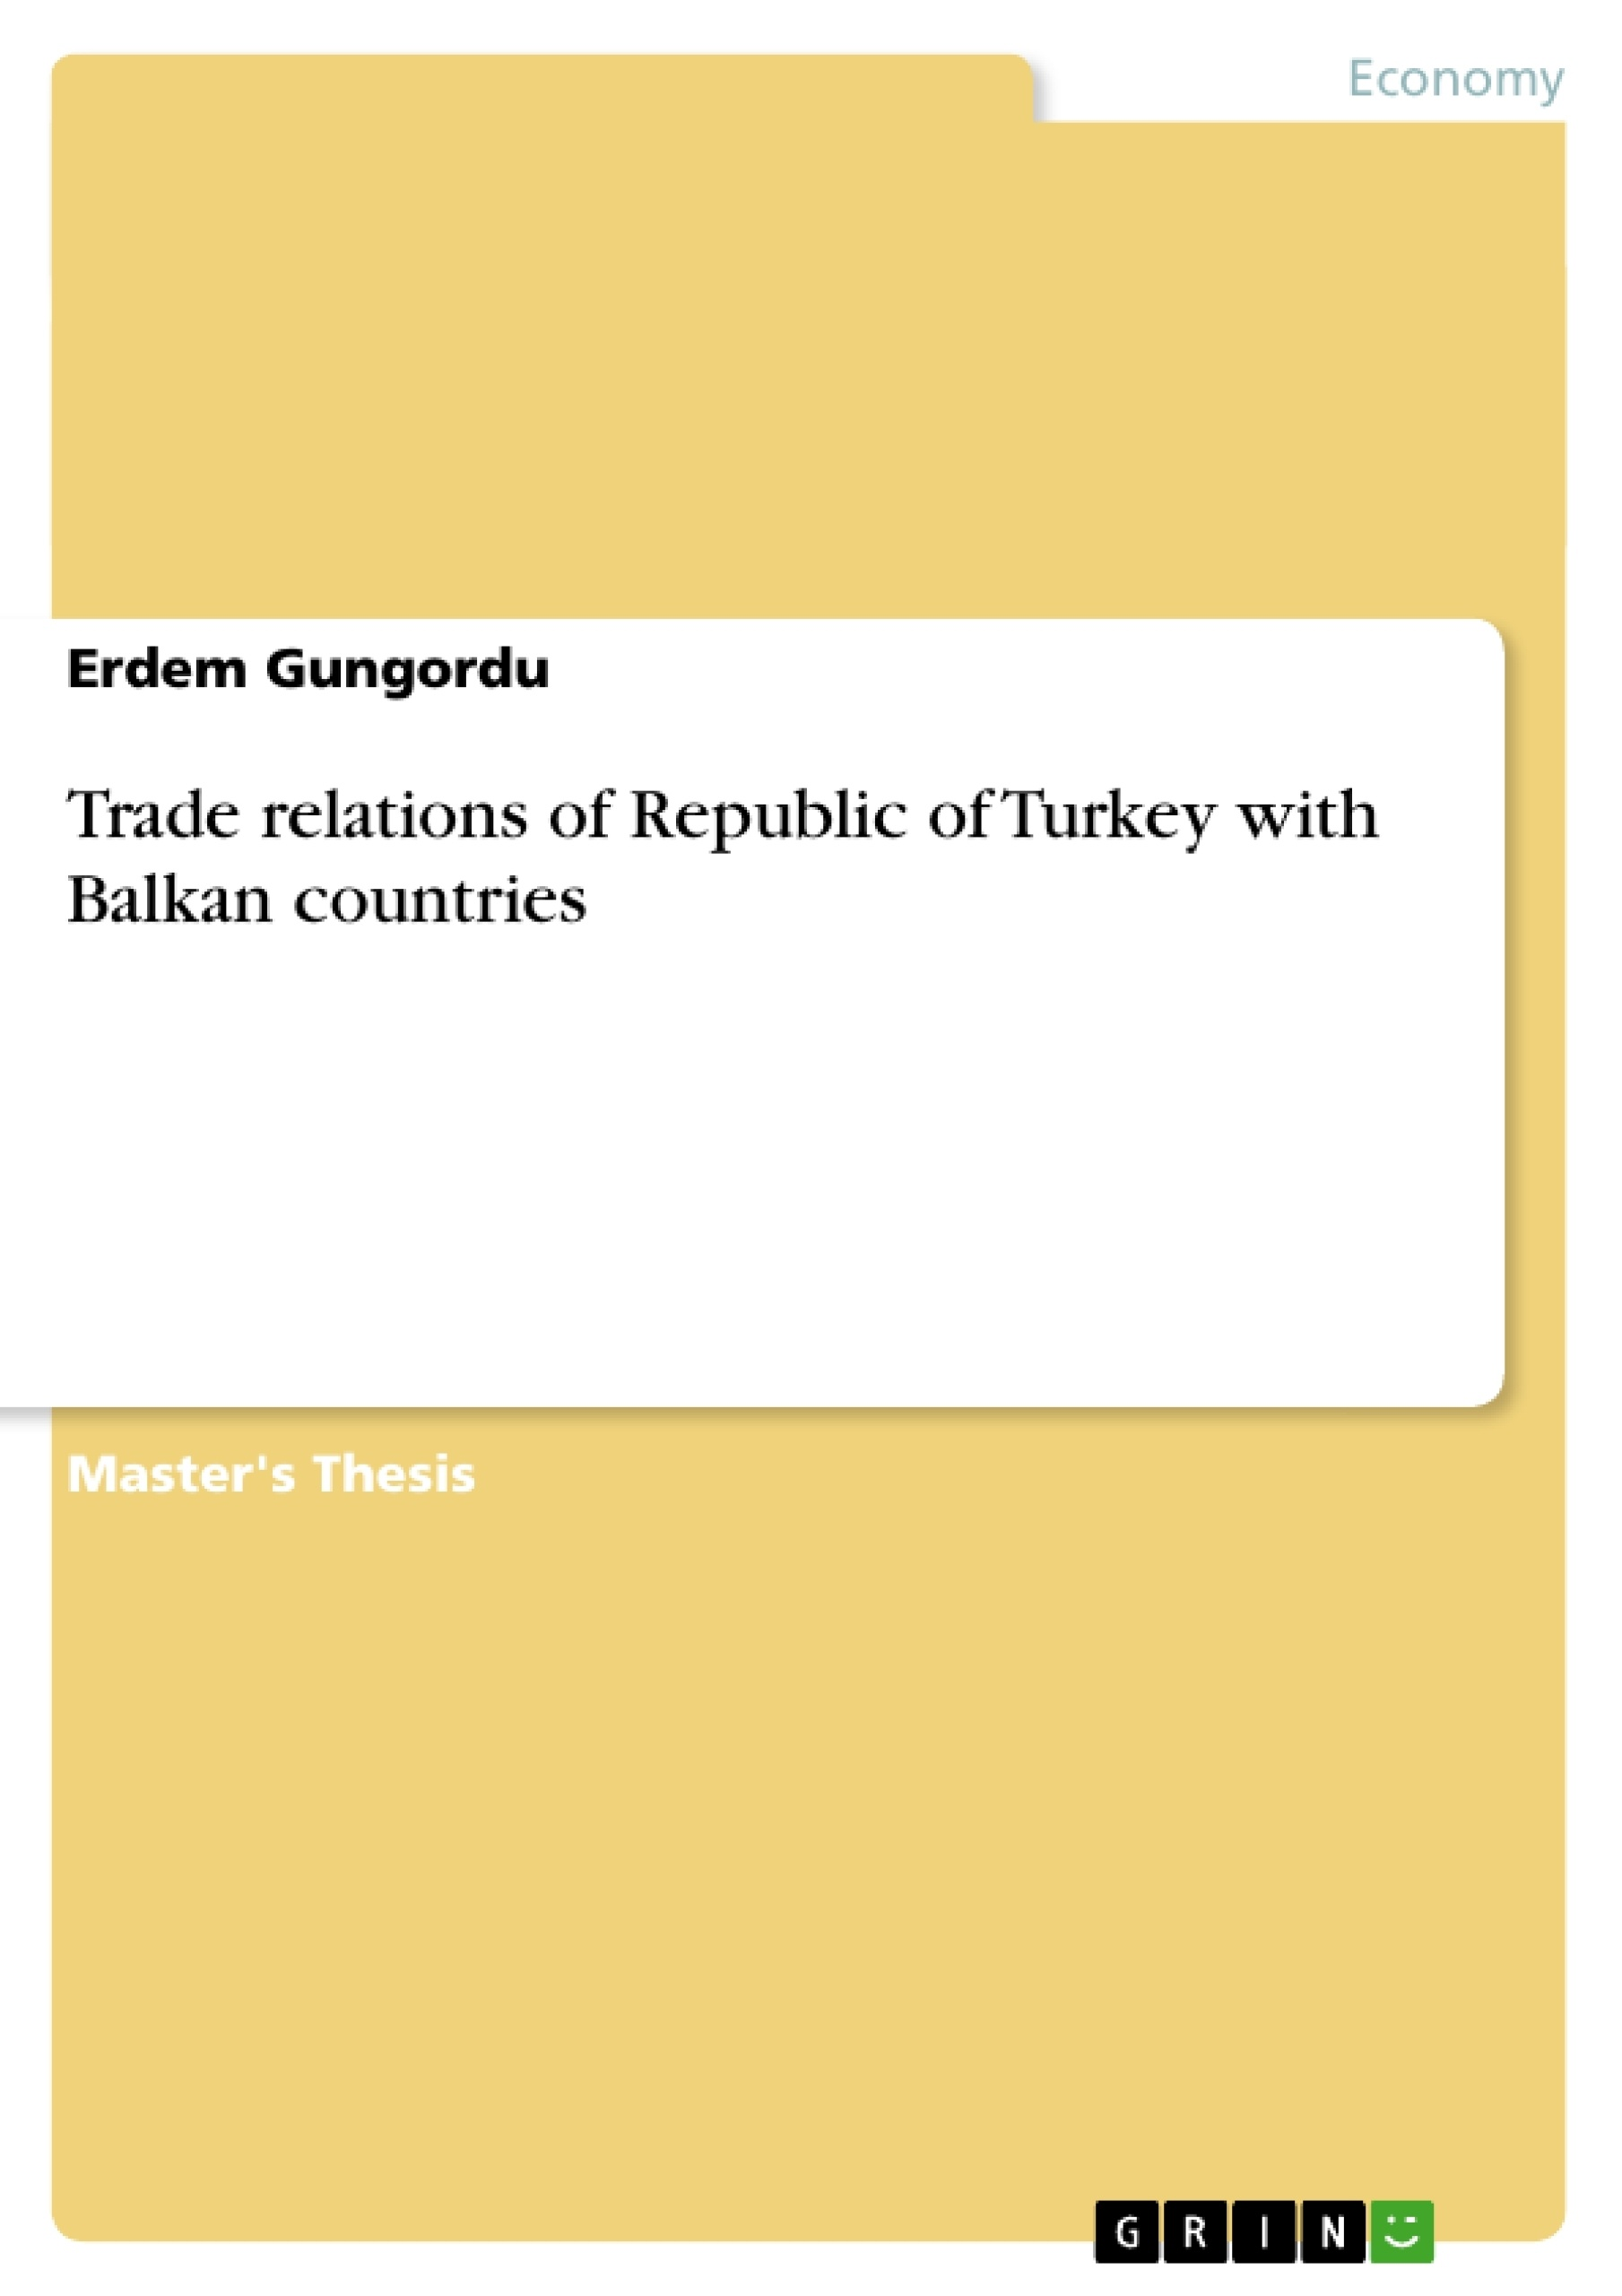 Title: Trade relations of Republic of Turkey with Balkan countries